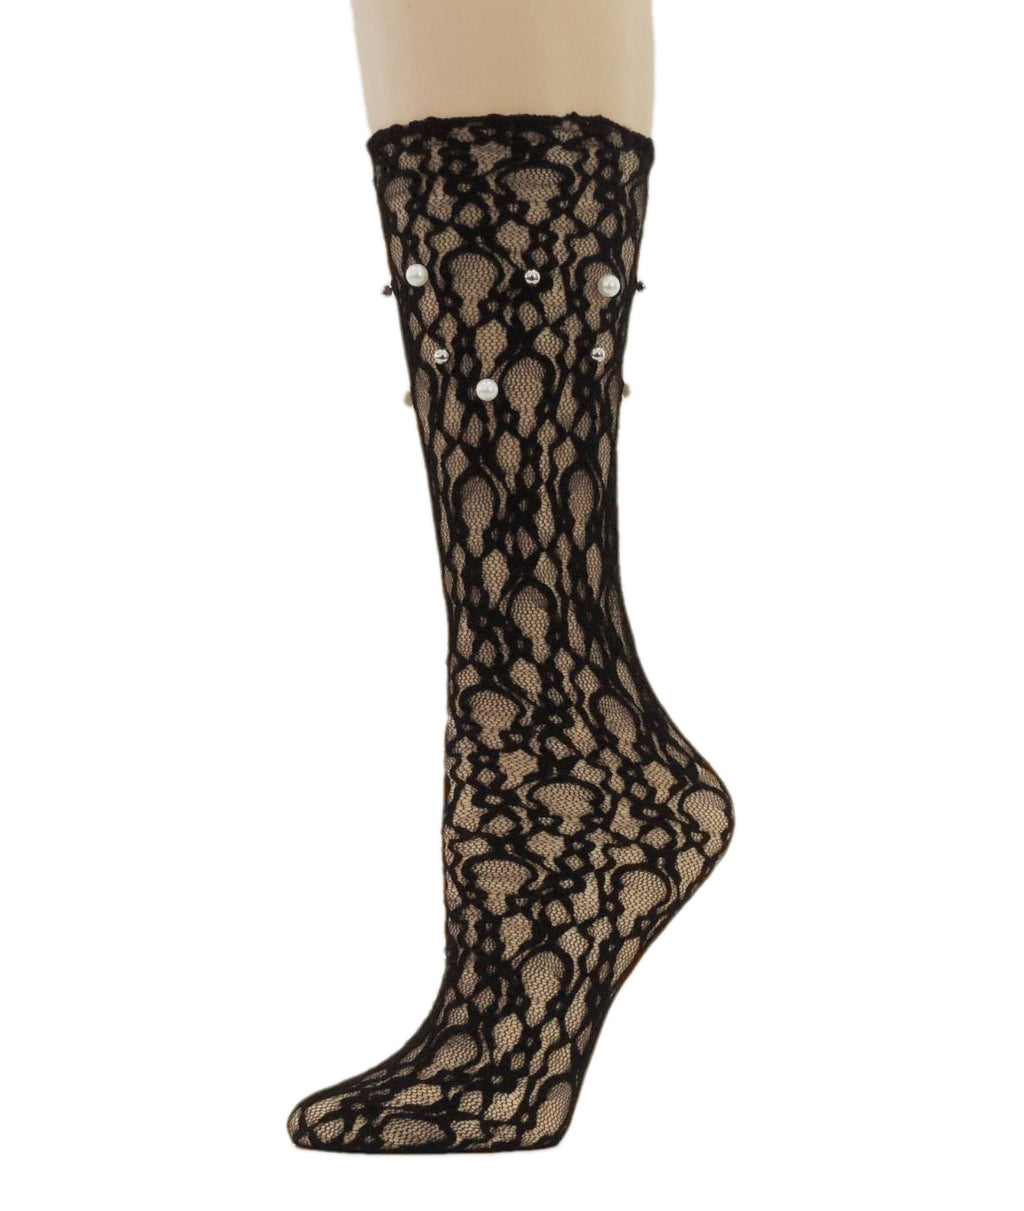 Elegant Black Mesh Socks with Pearls - Global Trendz Fashion®